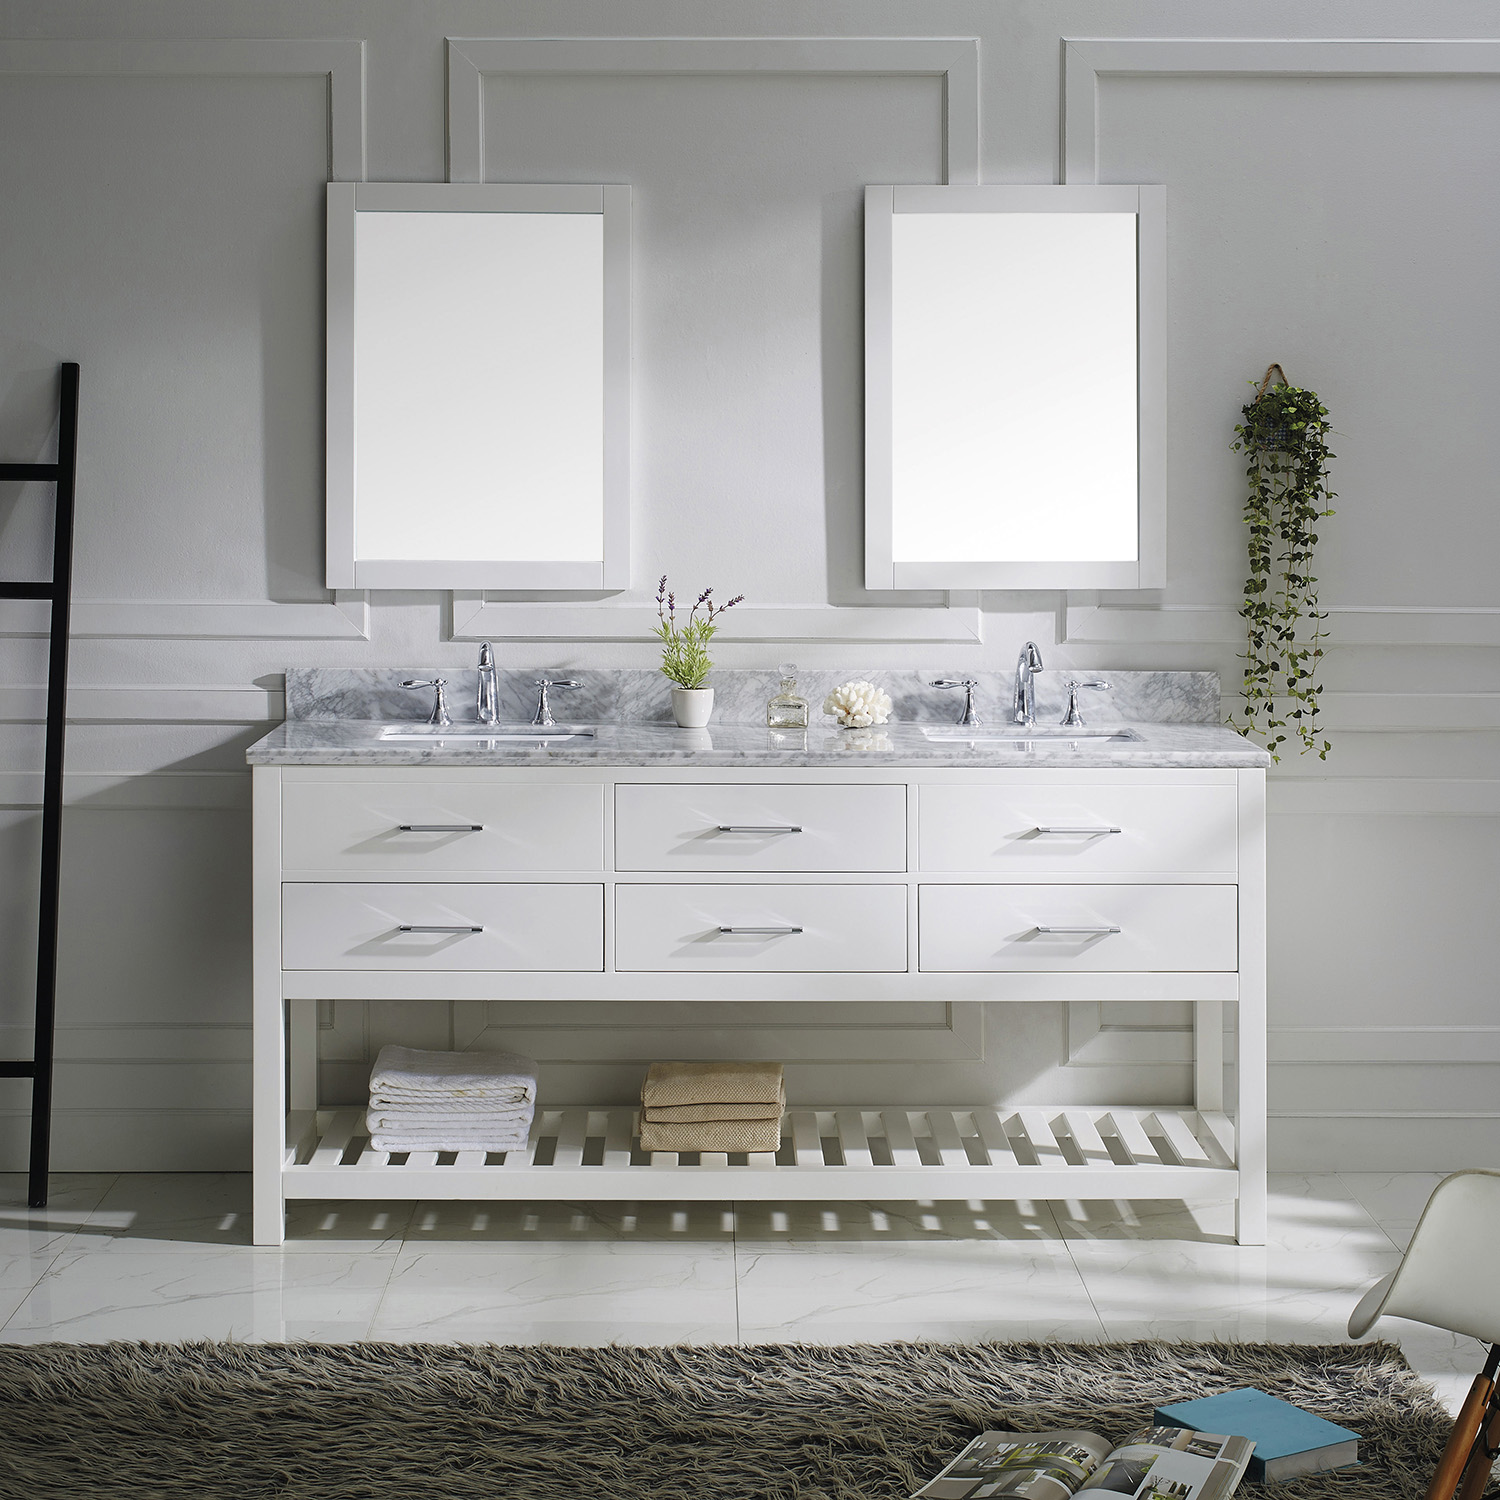 How to know if your Bathroom Vanity is high quality?